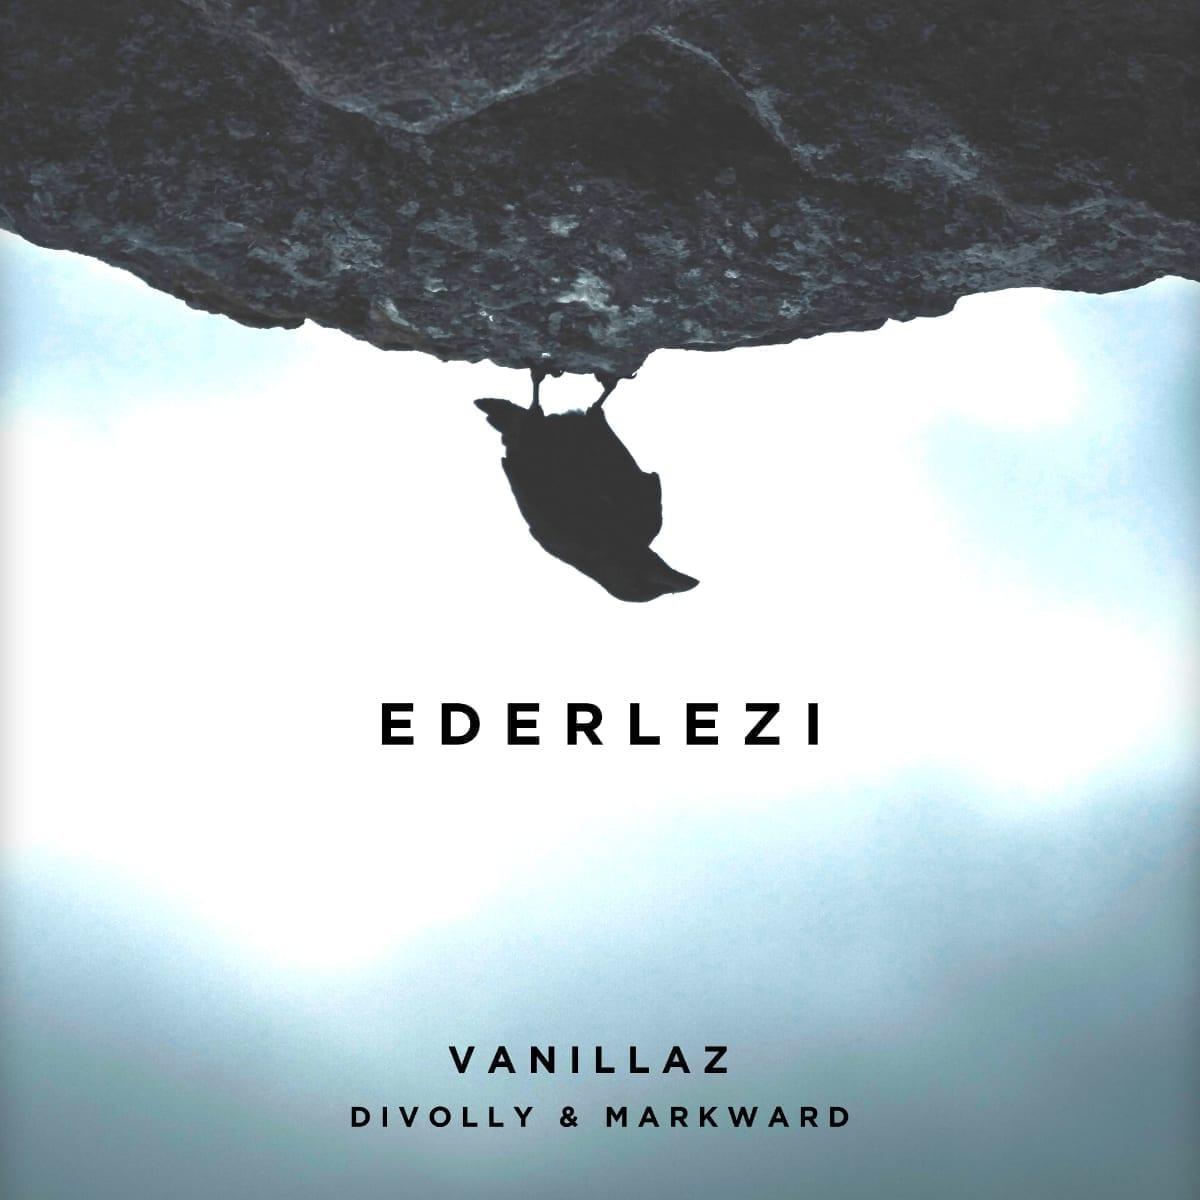 Vanillaz_and_Divolly_Markward_Ederlezi